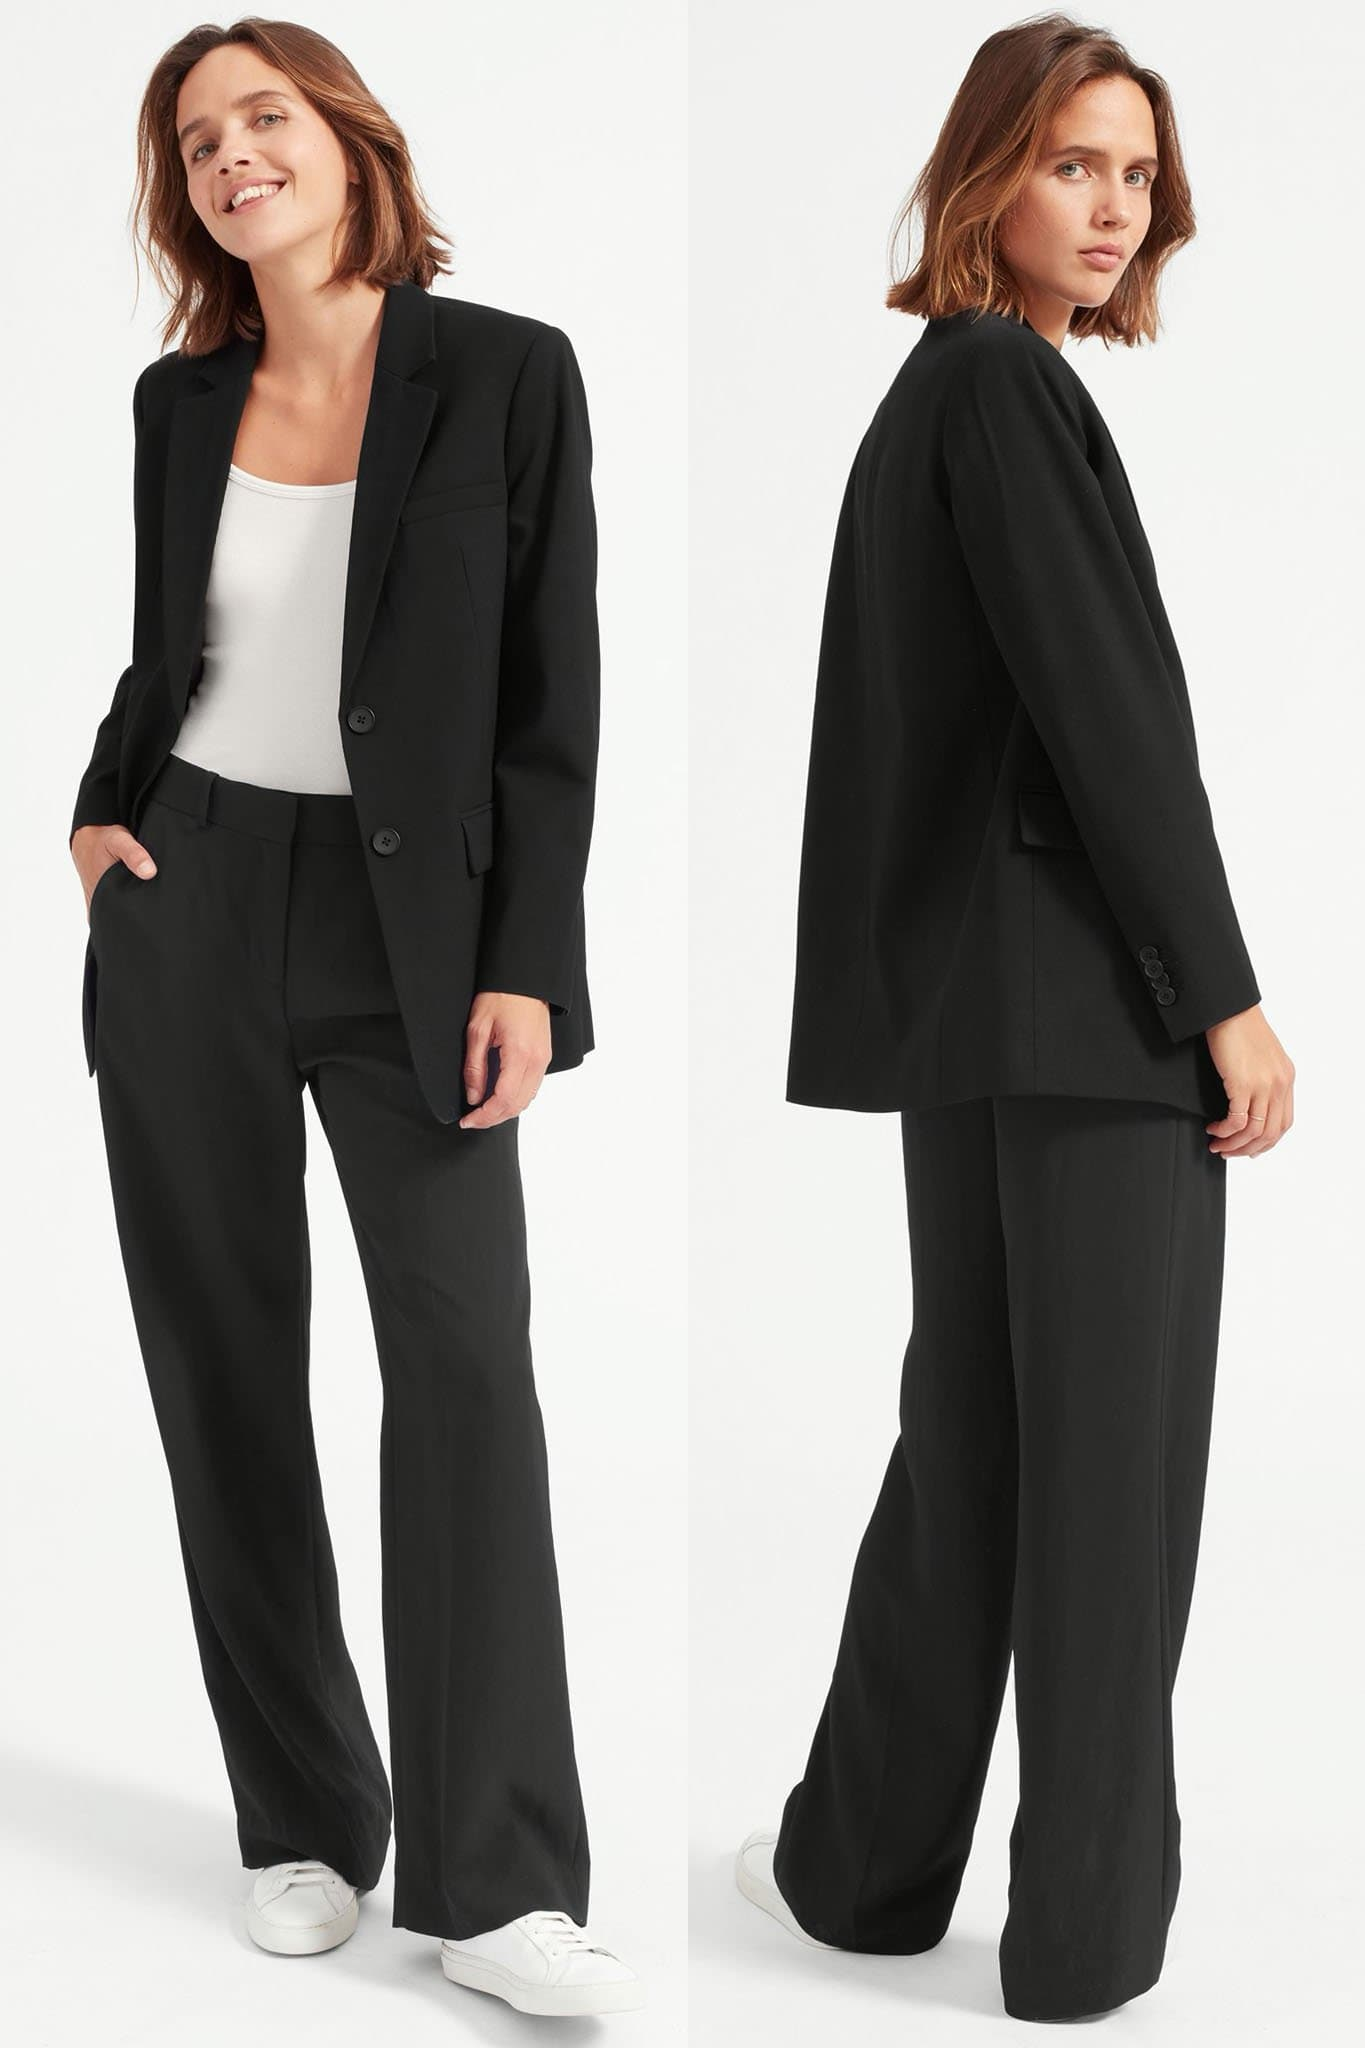 Pair their pants with oversized blazers and jackets for a chic contemporary look